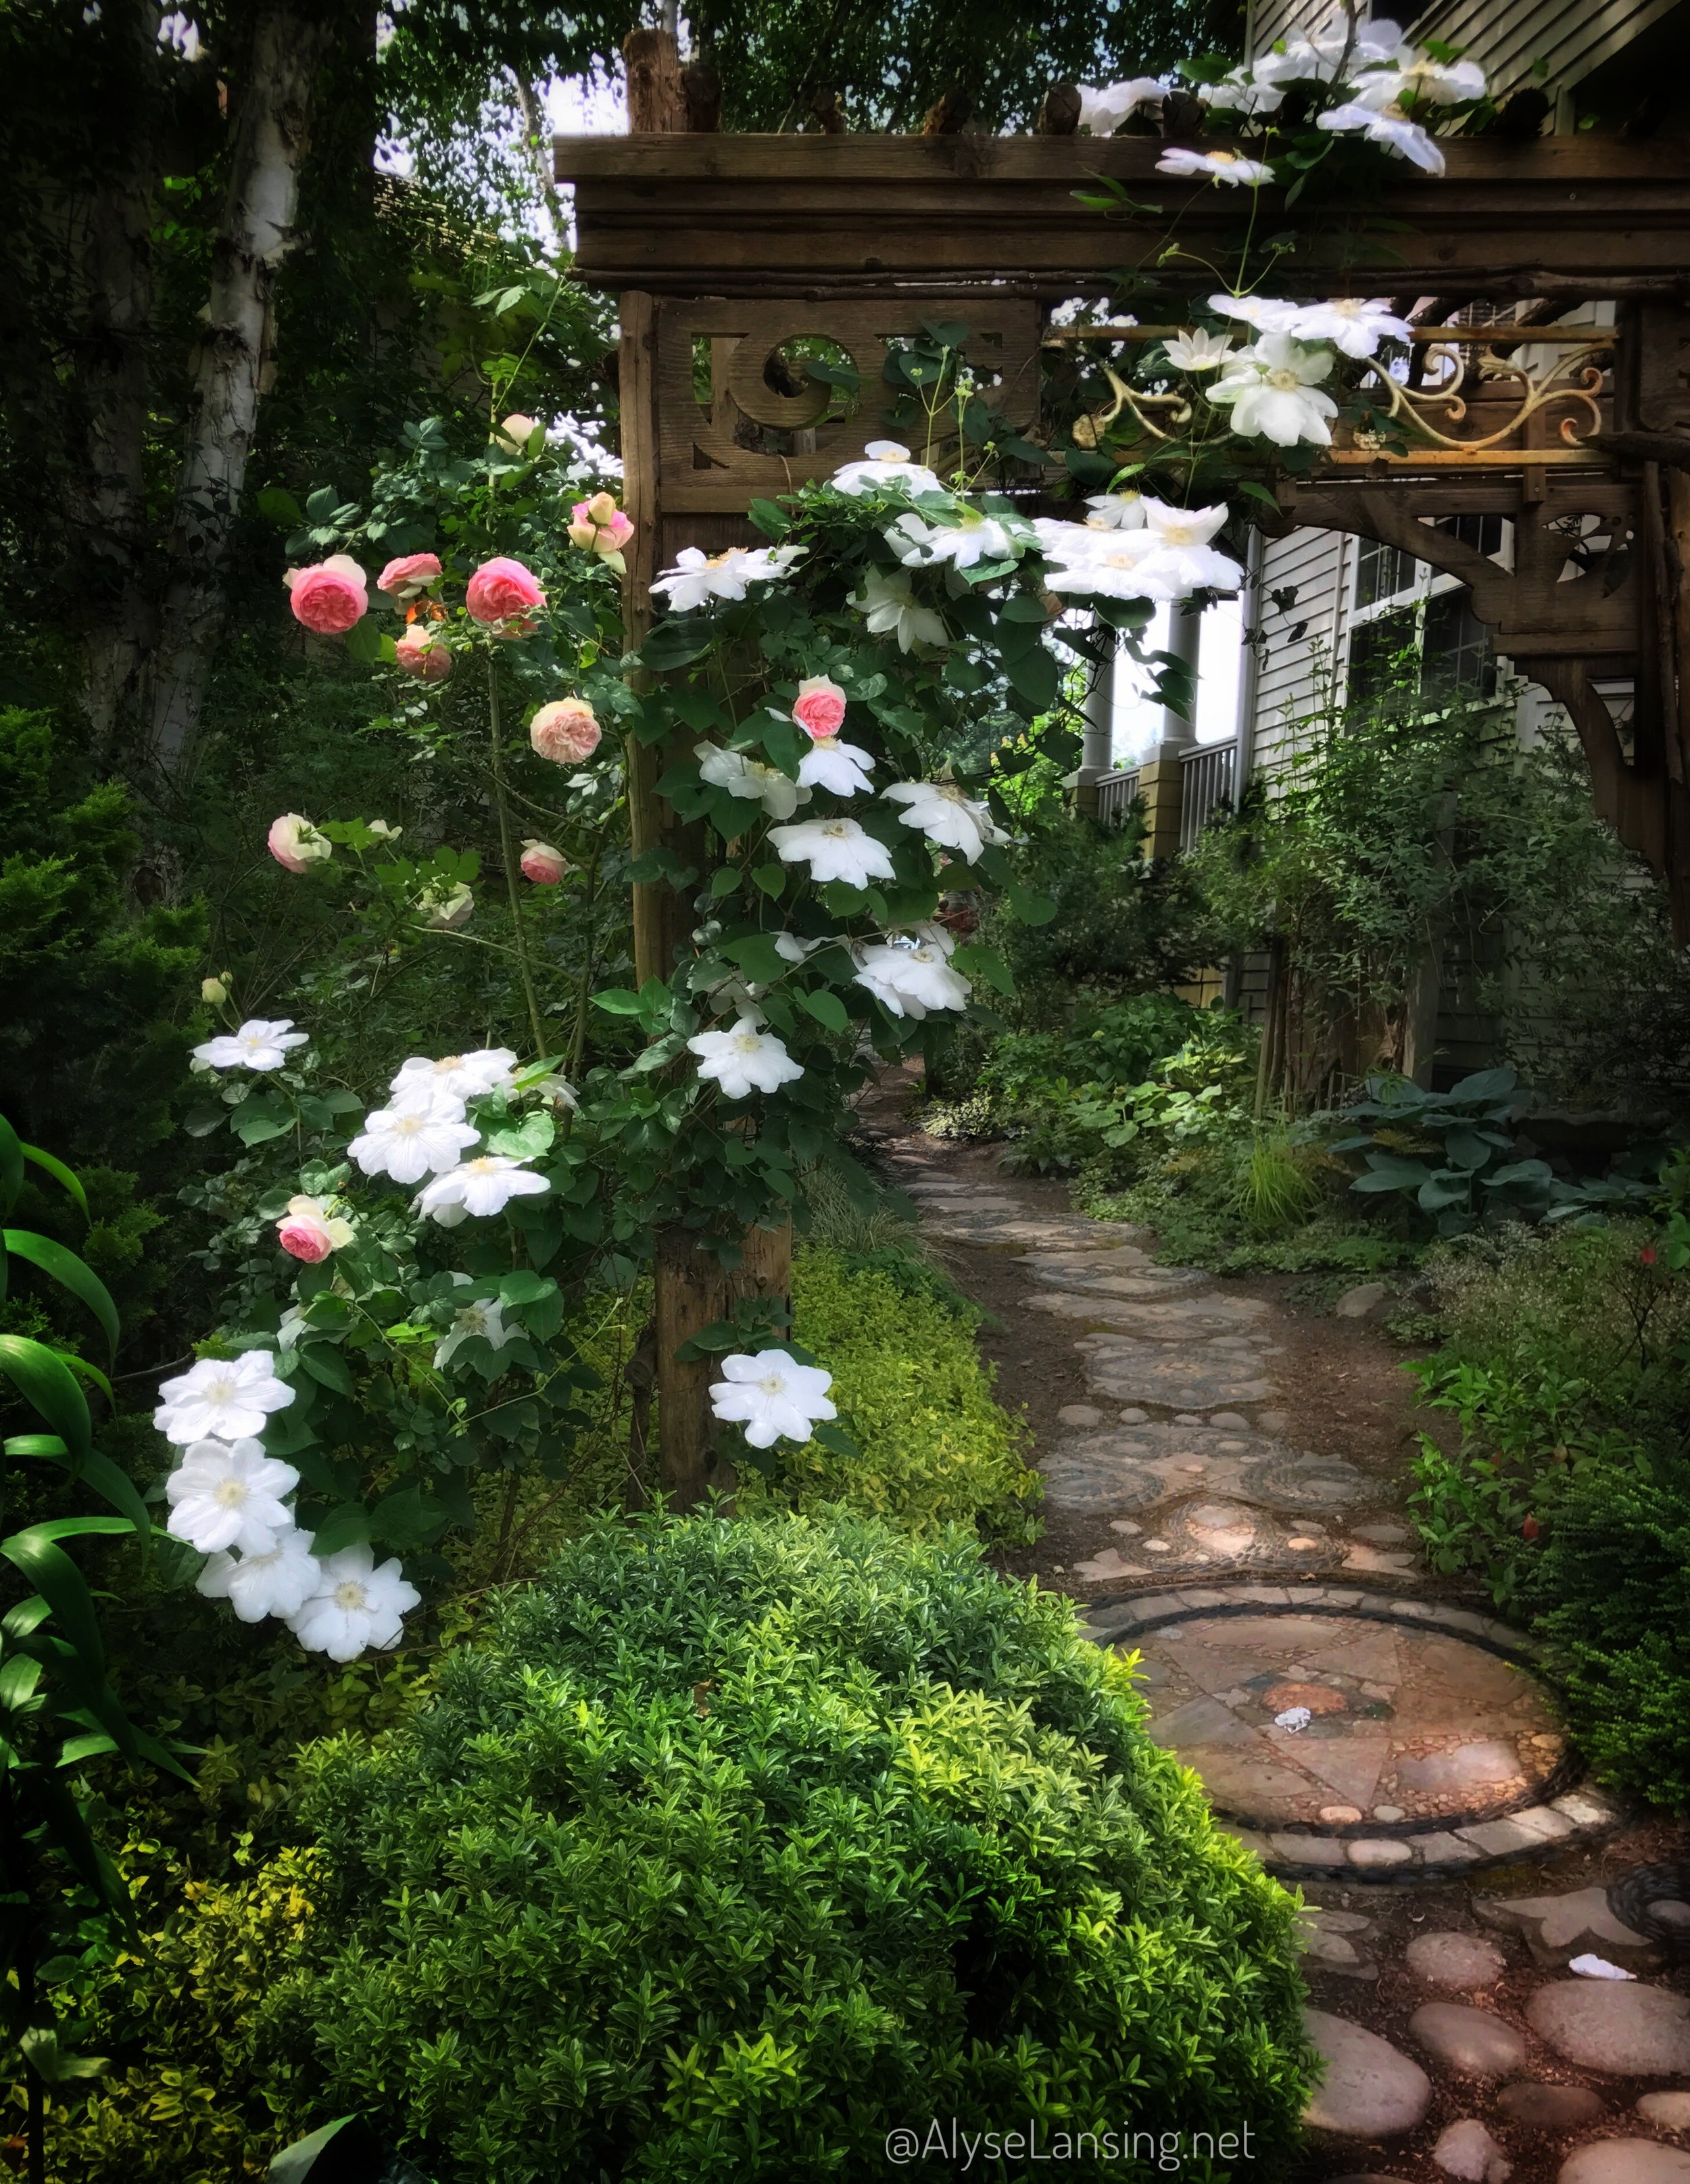 Clematis 'Candida'& Rosa 'Eden' in peak bloom June 7, 2017. Both arbor and mosaic path created by Marcia Westcott Peck.